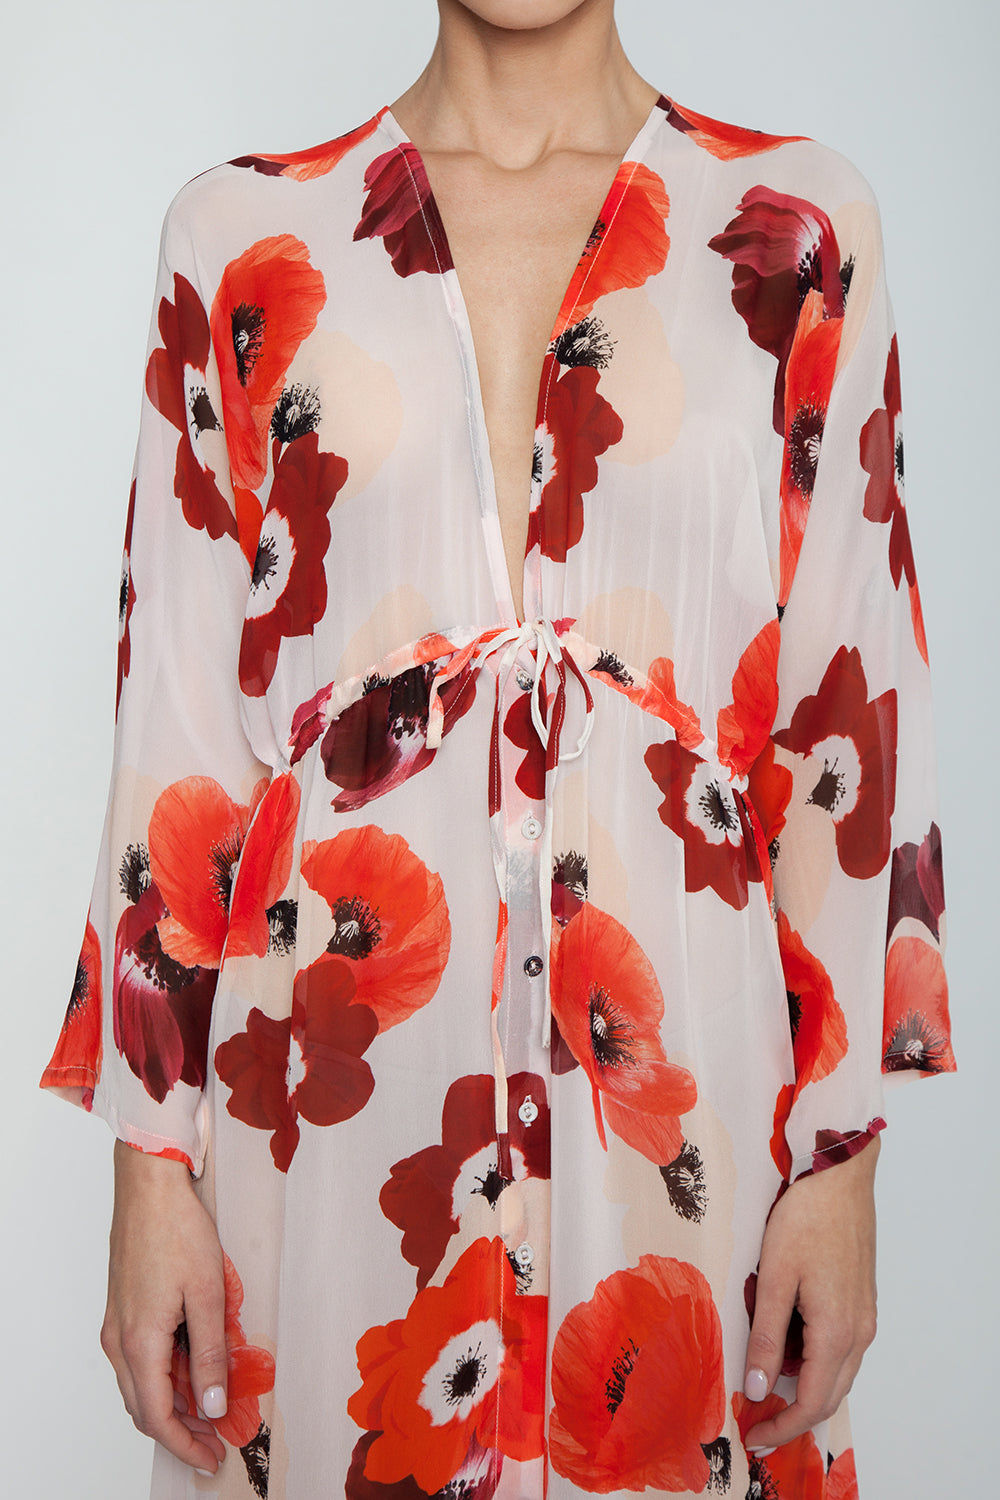 EVARAE Gela Open Kimono - Red Poppy Print Dress | Red Poppy Print| Evarae Gela Open Kimono - Red Poppy Print. Features:  100% Silk Georgette Slightly sheer Can be worn open or pulled in by adjustable cords at the waist Detail View